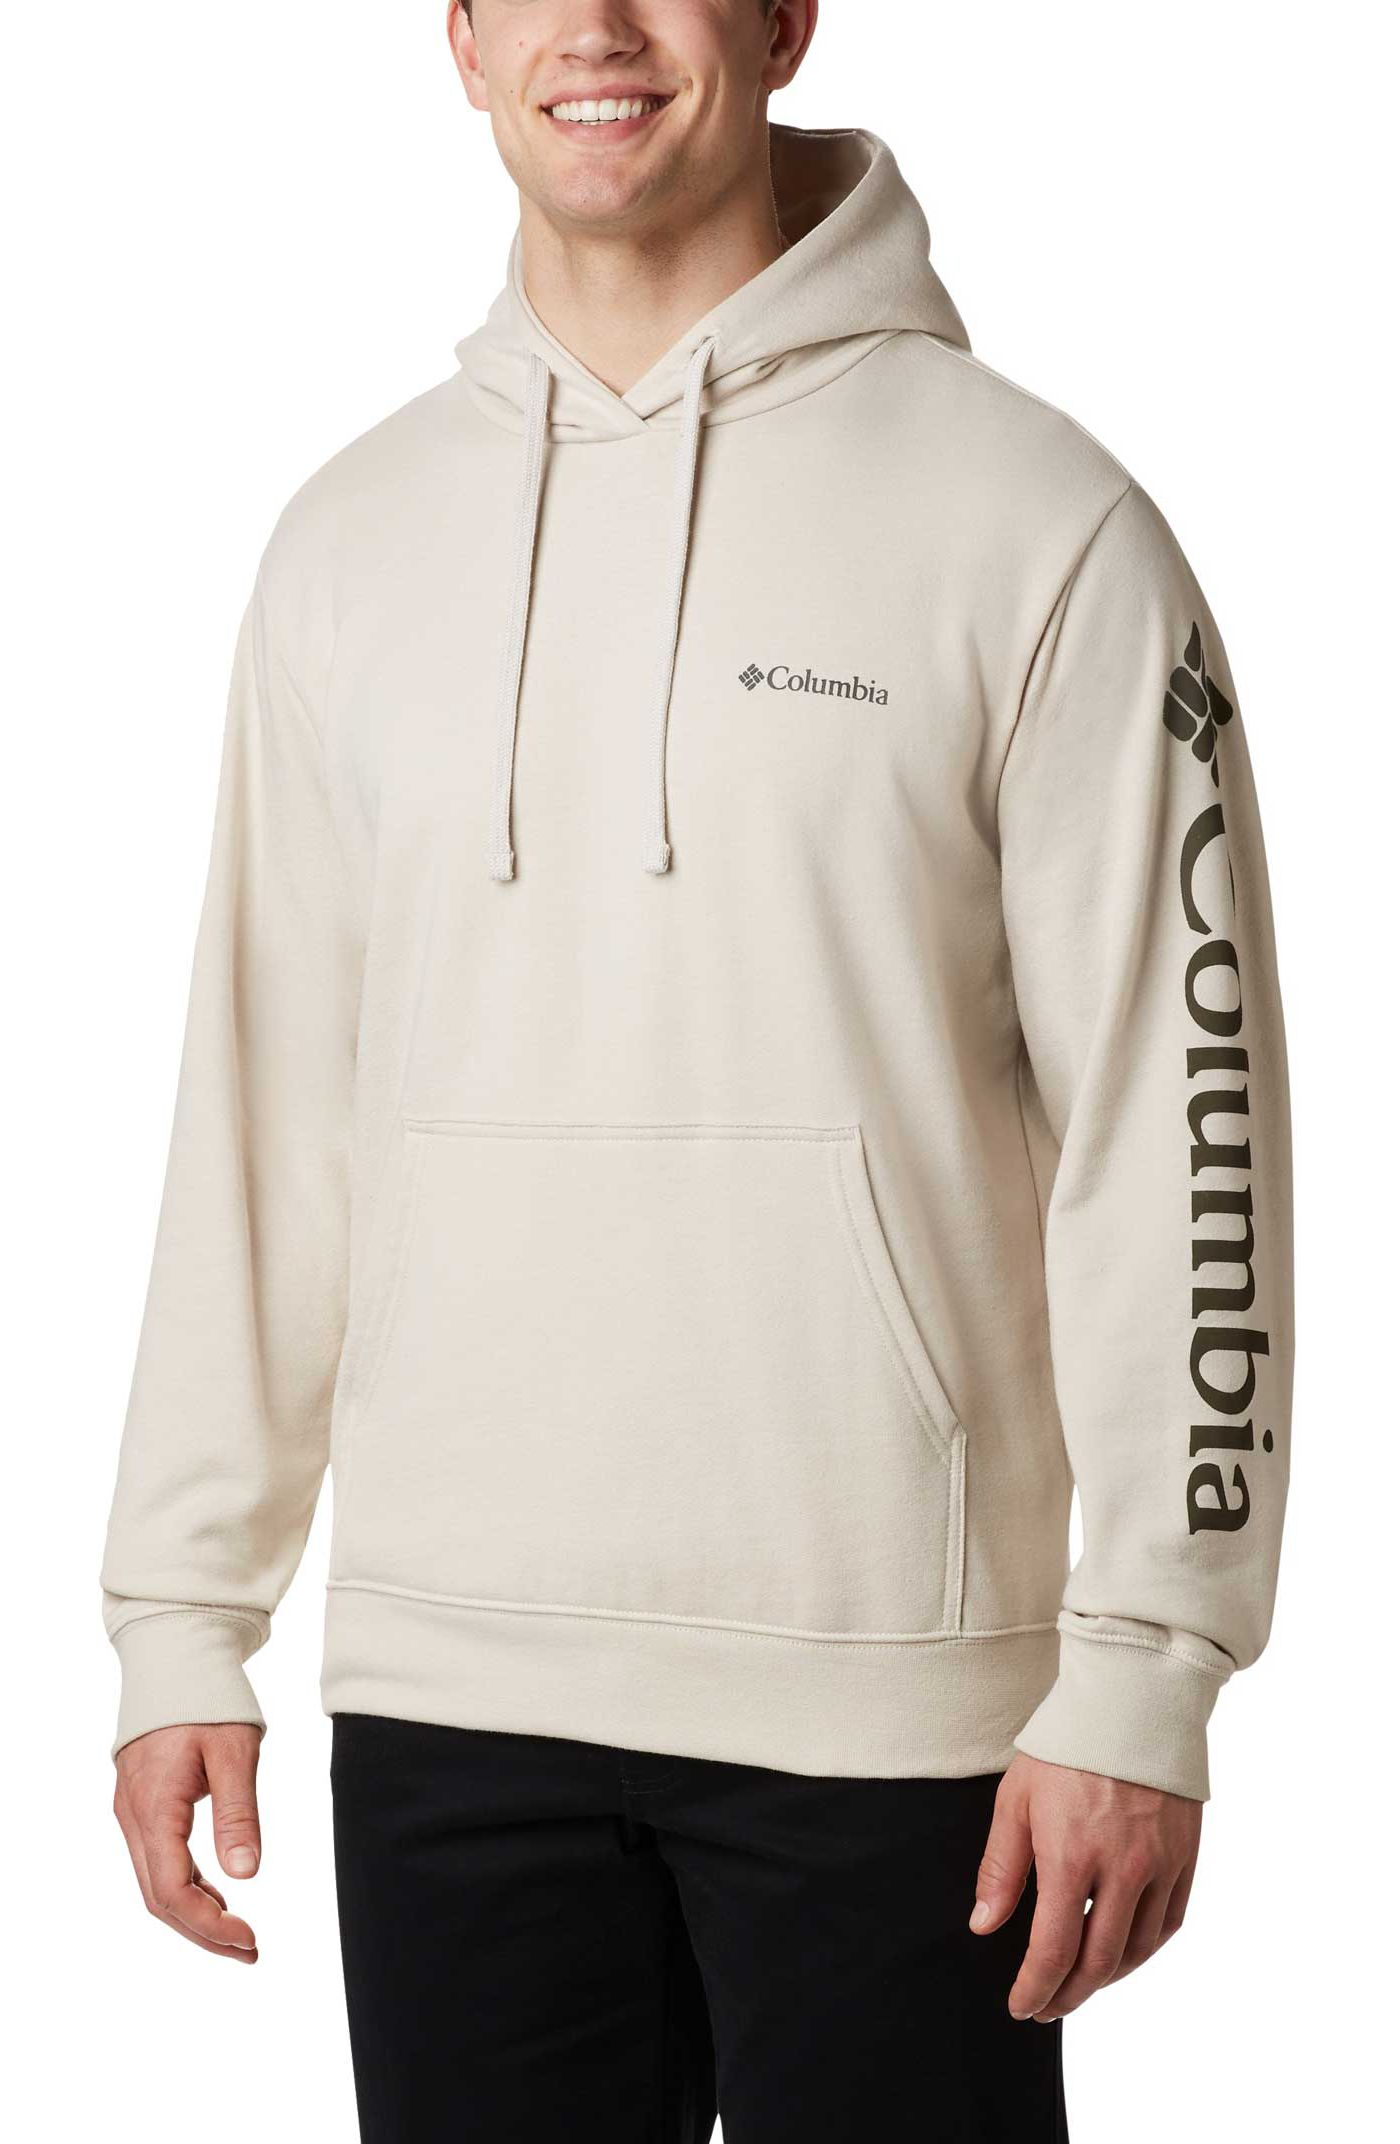 Columbia Men's Viewmont II Sleeve Graphic Hoodie